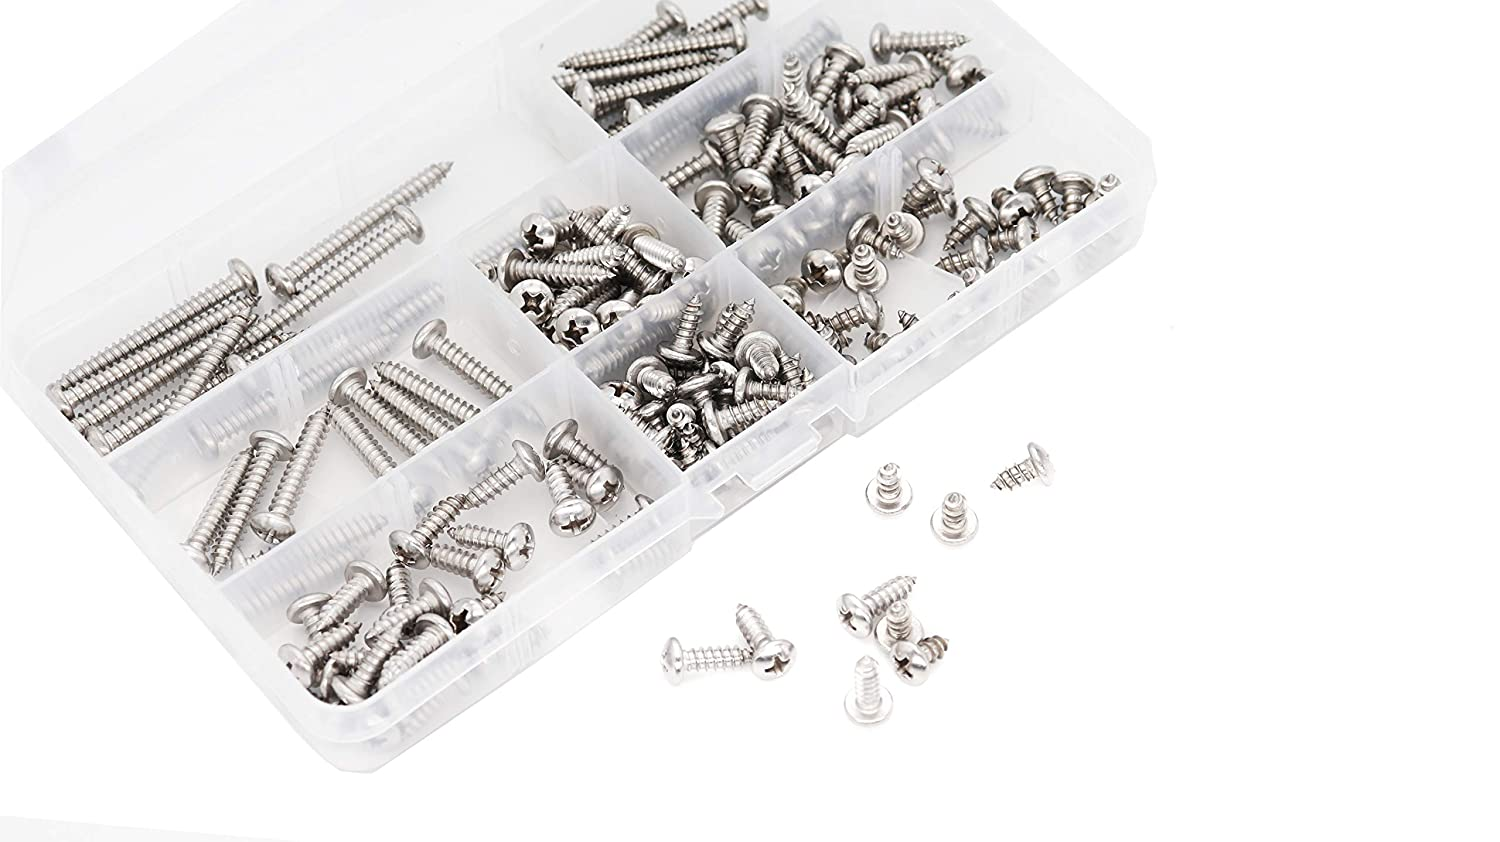 binifiMux 170pcs Round Head Phillips #8 Self Tapping Screws Assortment Kit 304 Stainless Steel